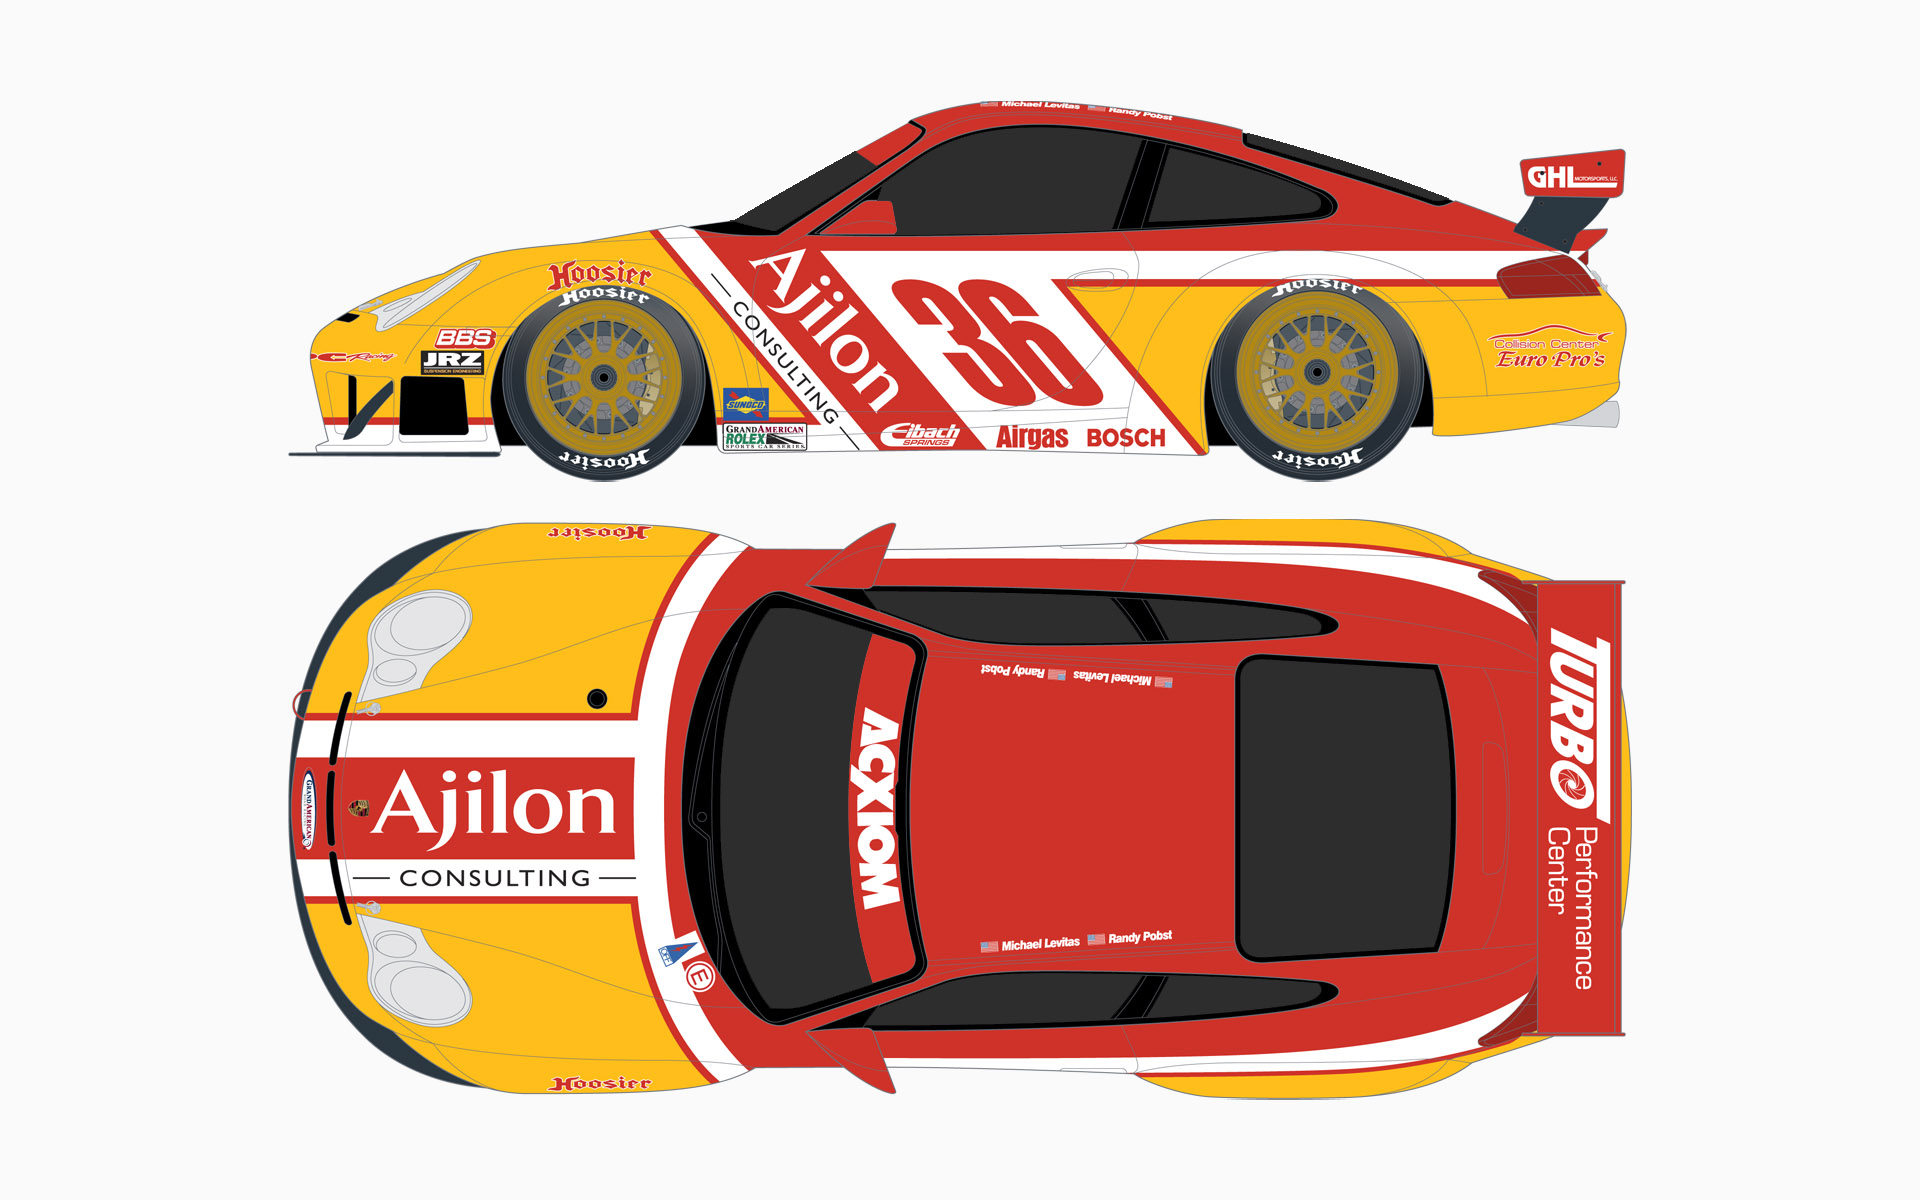 2005 TPC Racing Ajilon Consulting Porsche 911 GT3RS GT Livery Elevations